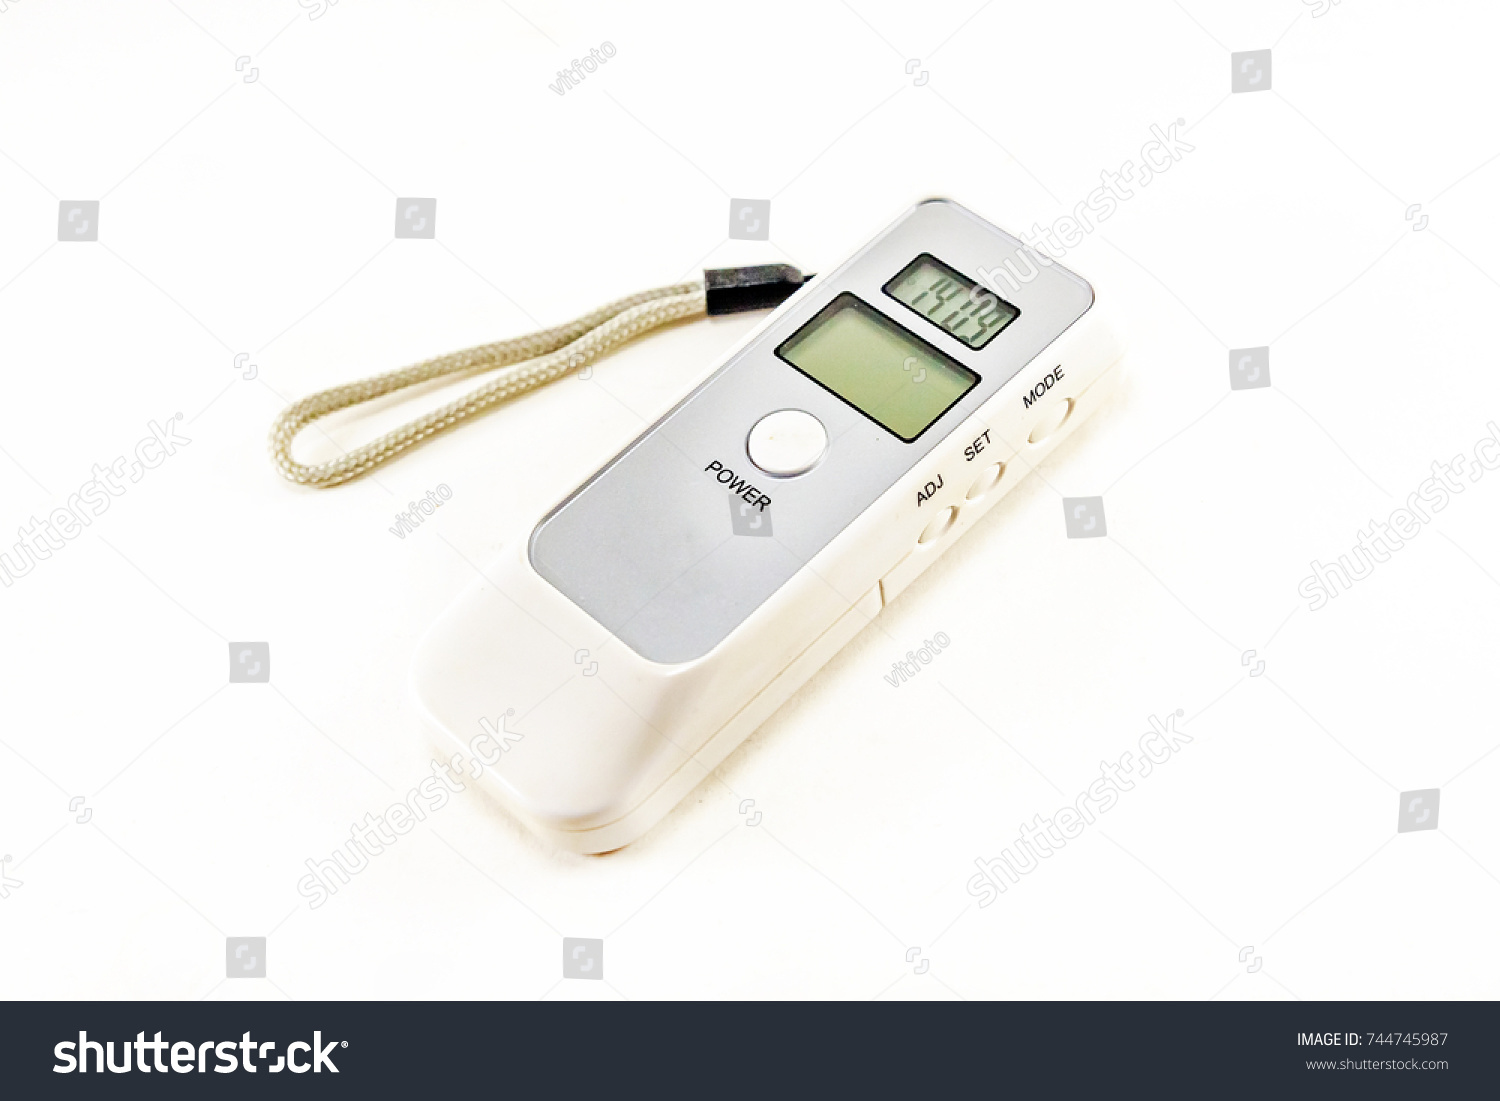 Digital Alcohol Breath Tester Isolated On White Background